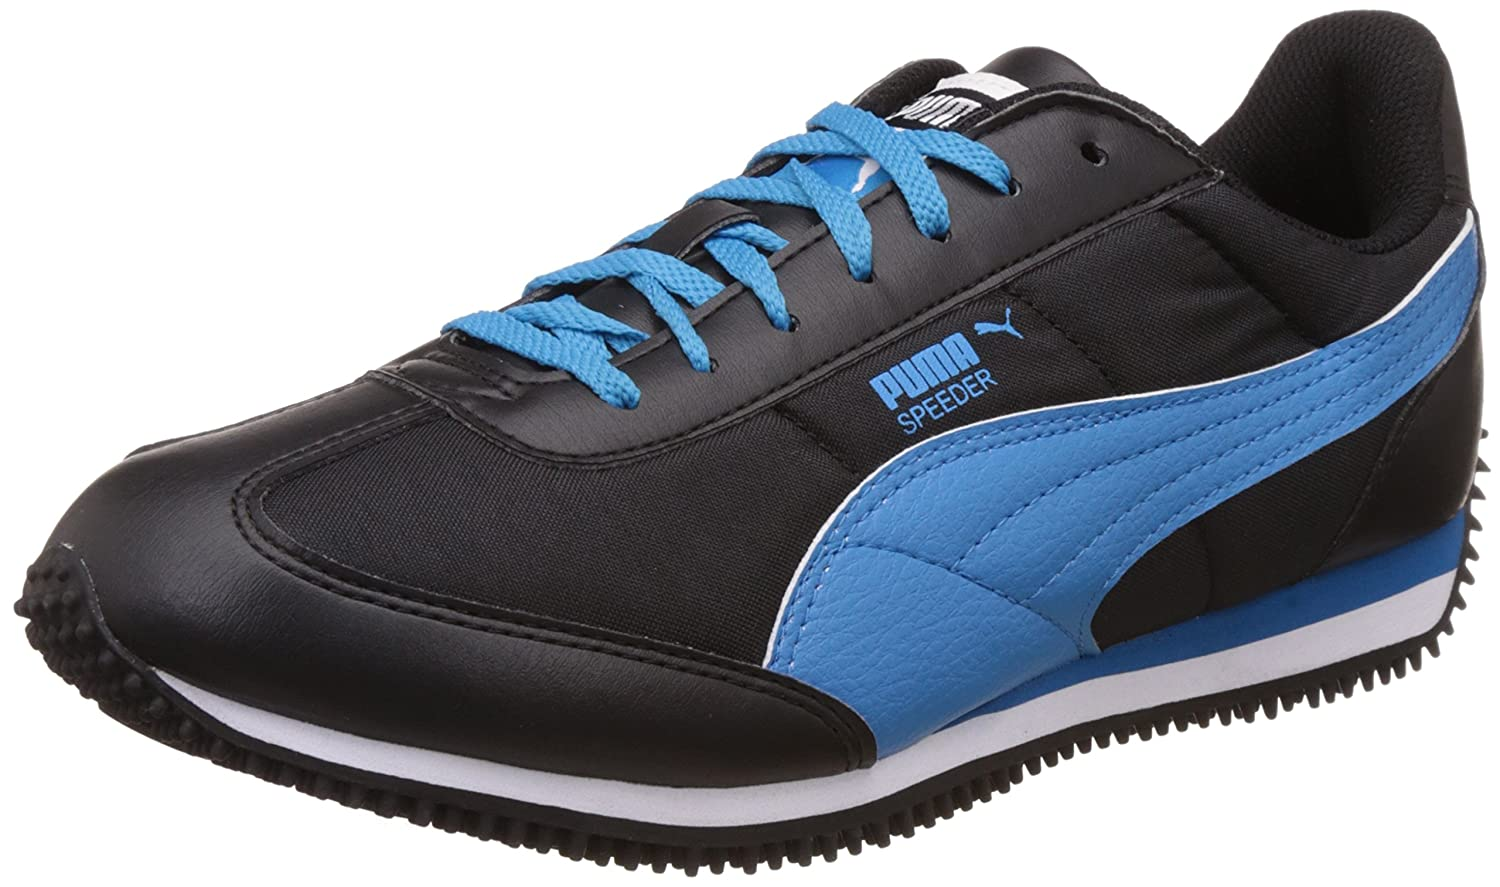 Black and Blue Aster Sneakers